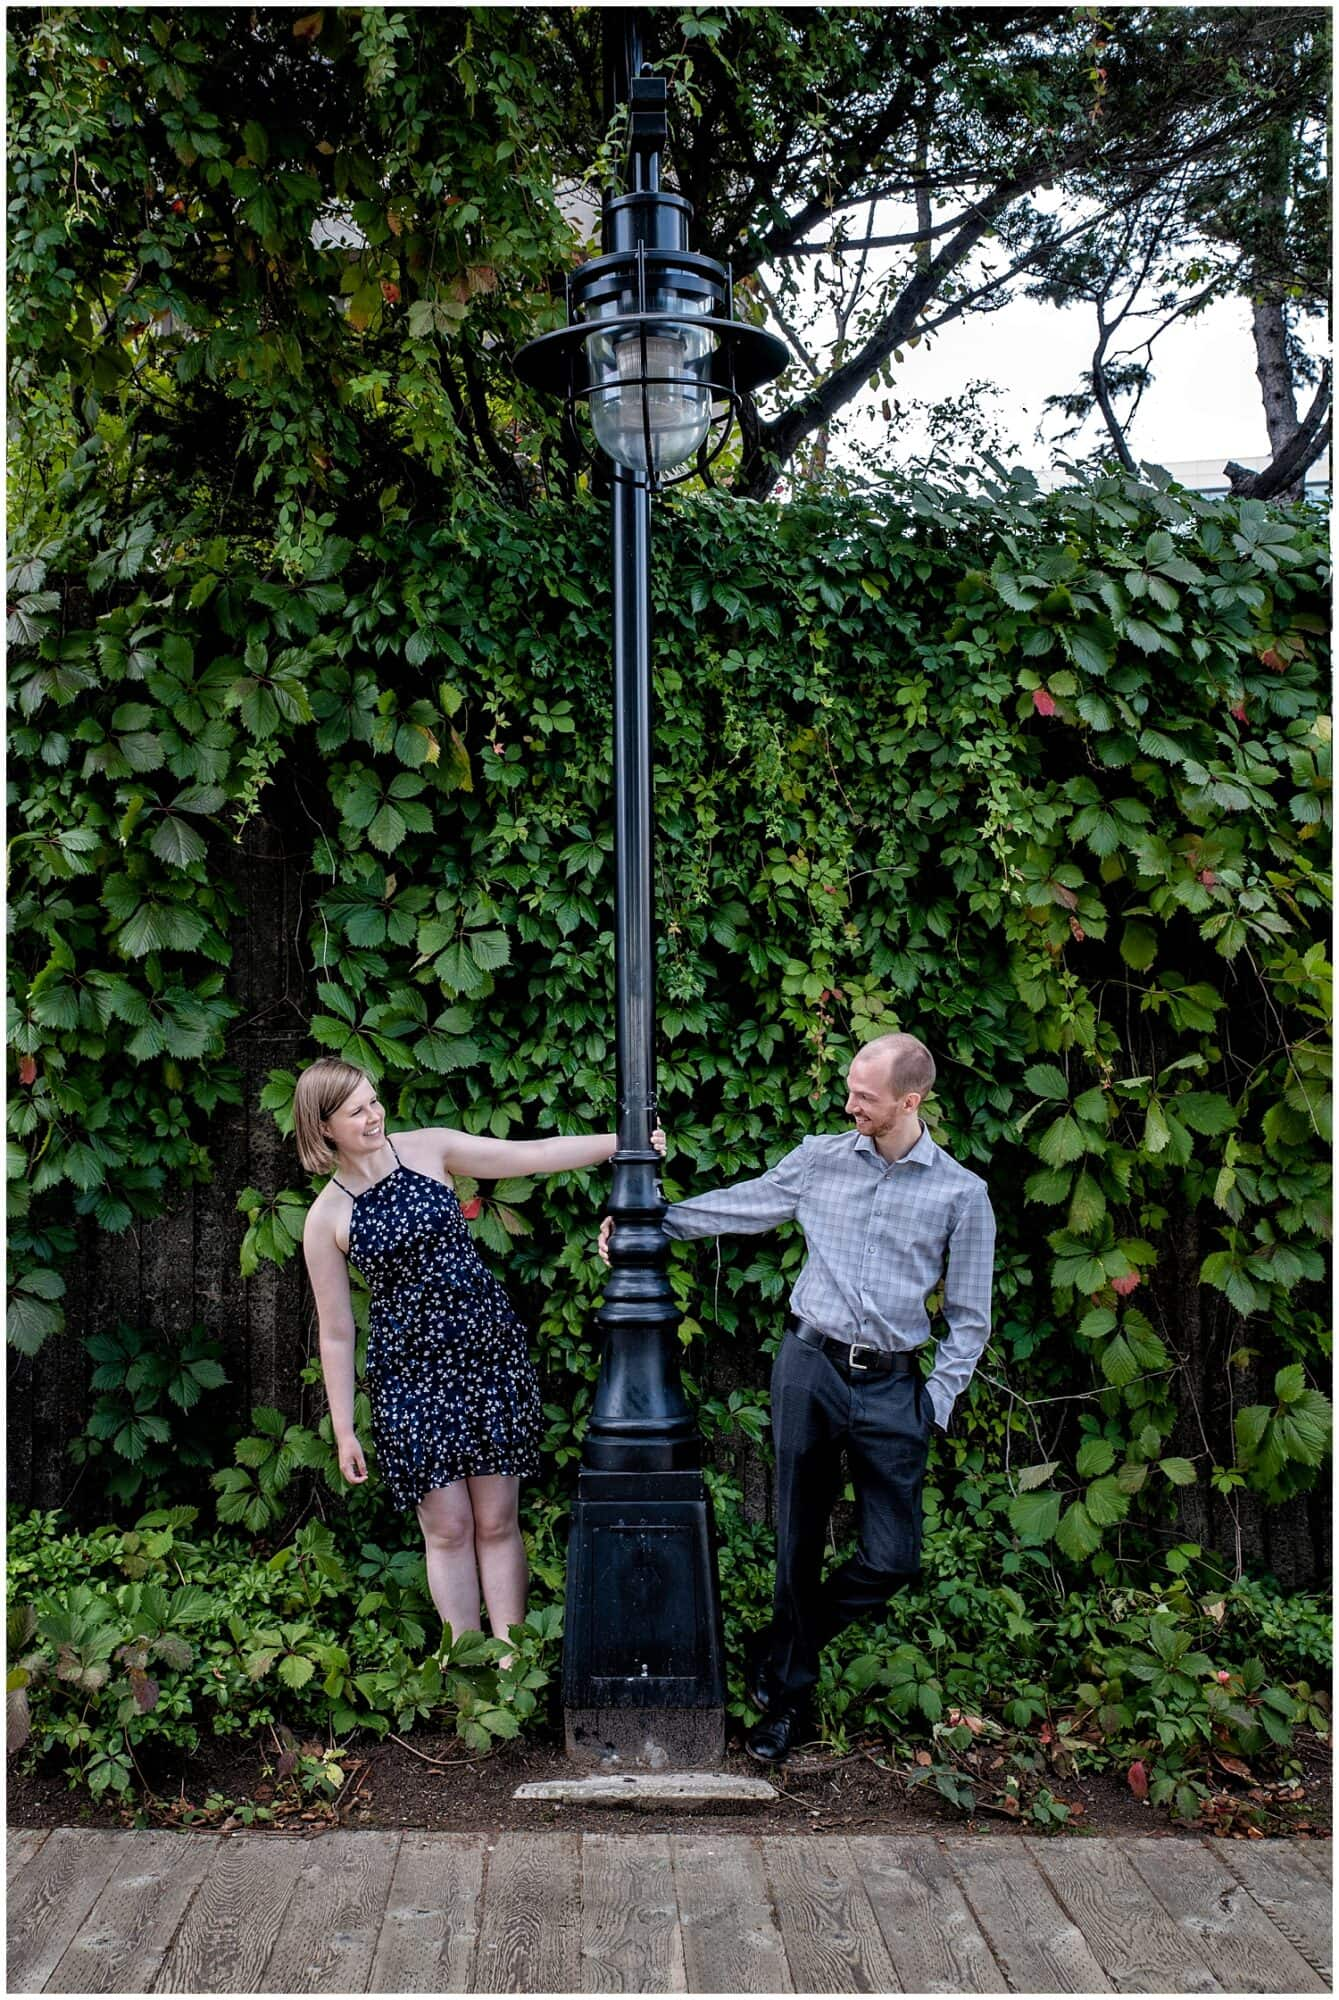 A newly engaged couple hold on to a street lamp while gazing at each other during their engagement photos at Historic Properties in Halifax NS.